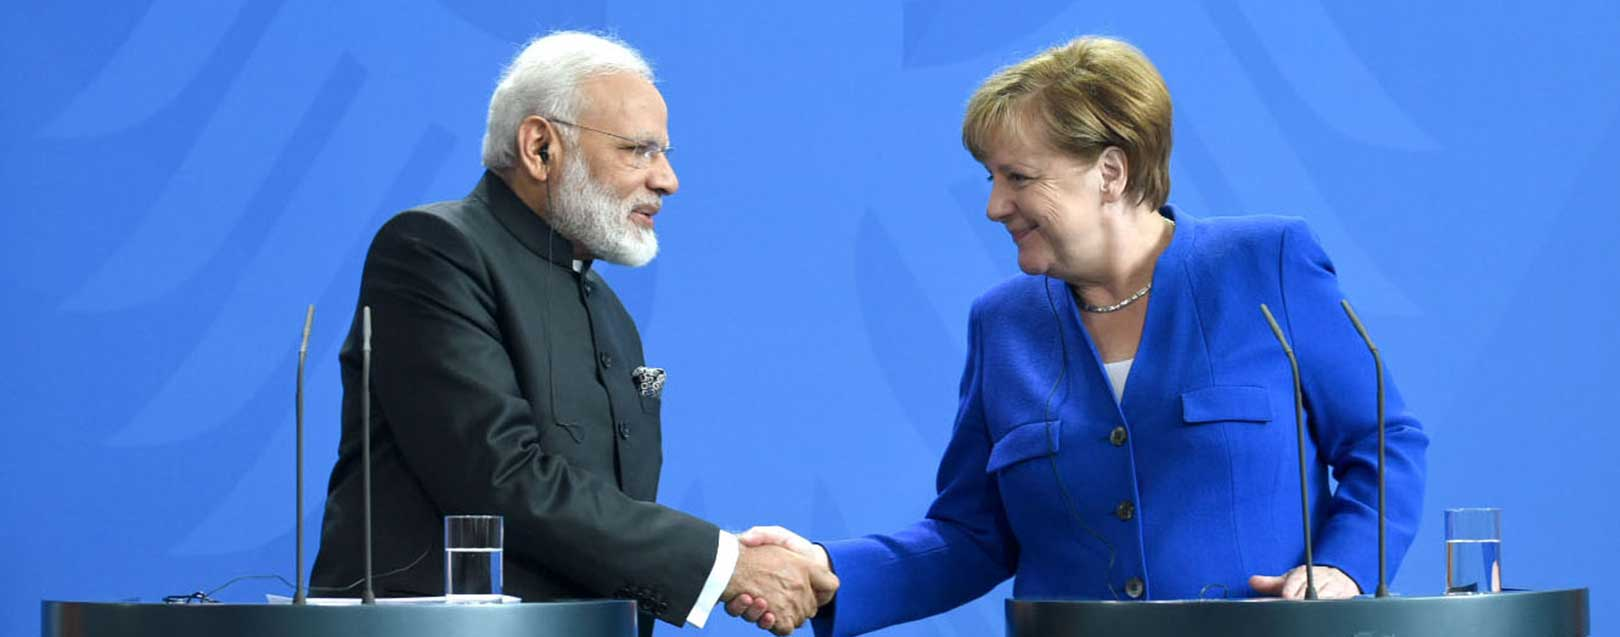 India is seeking to double German investment: Ex-envoy